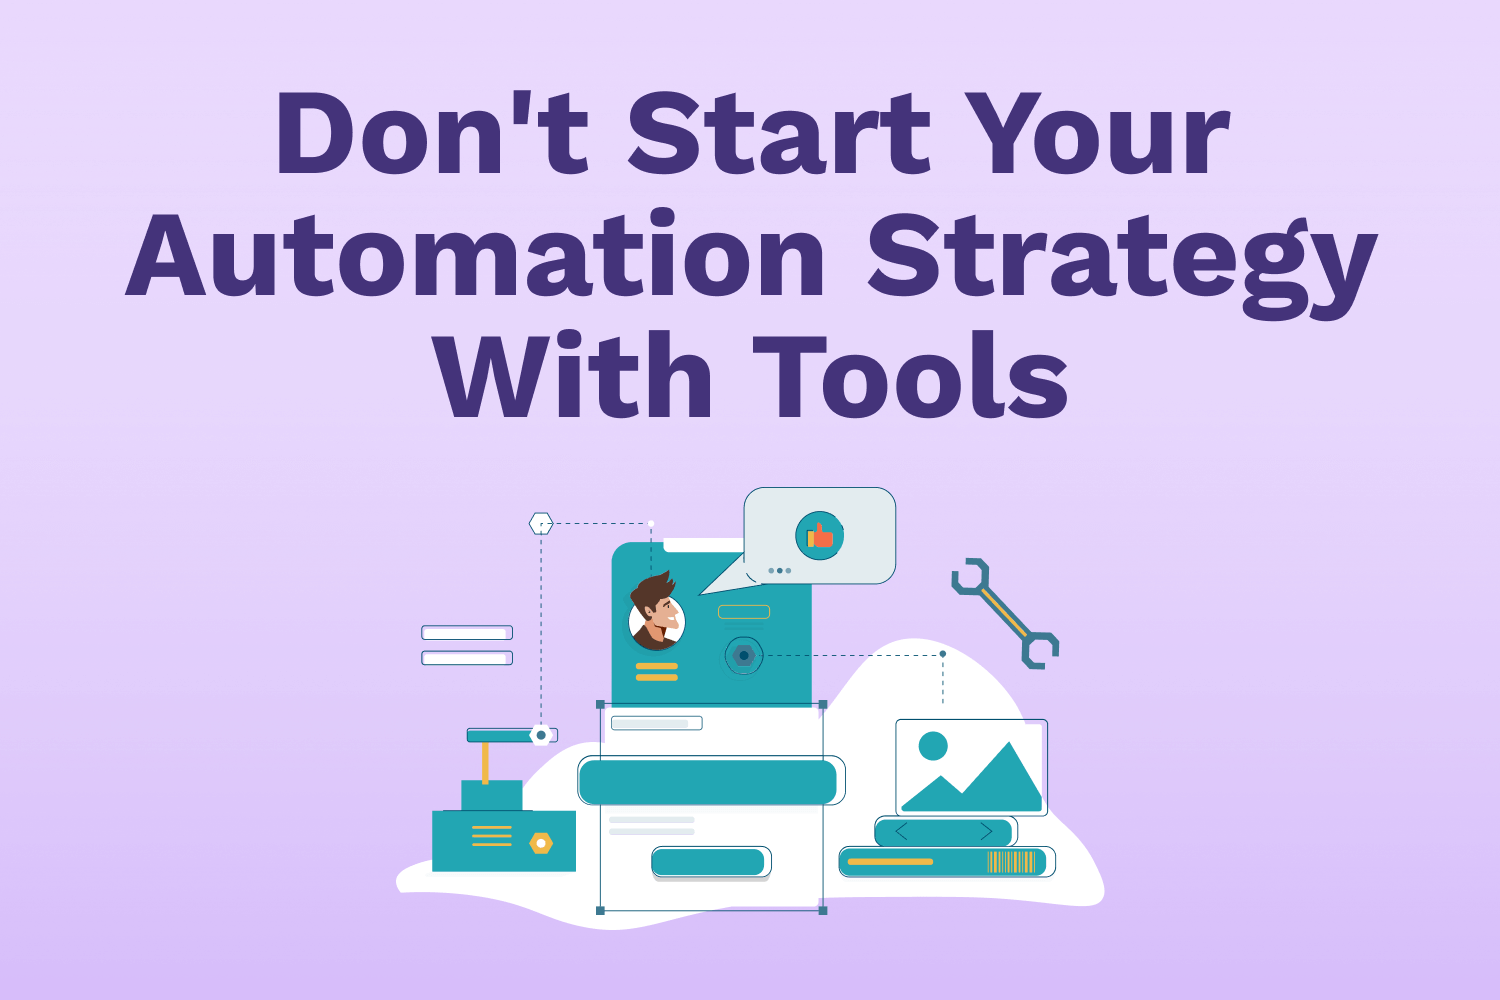 Don't Start Your Automation Strategy With Tools